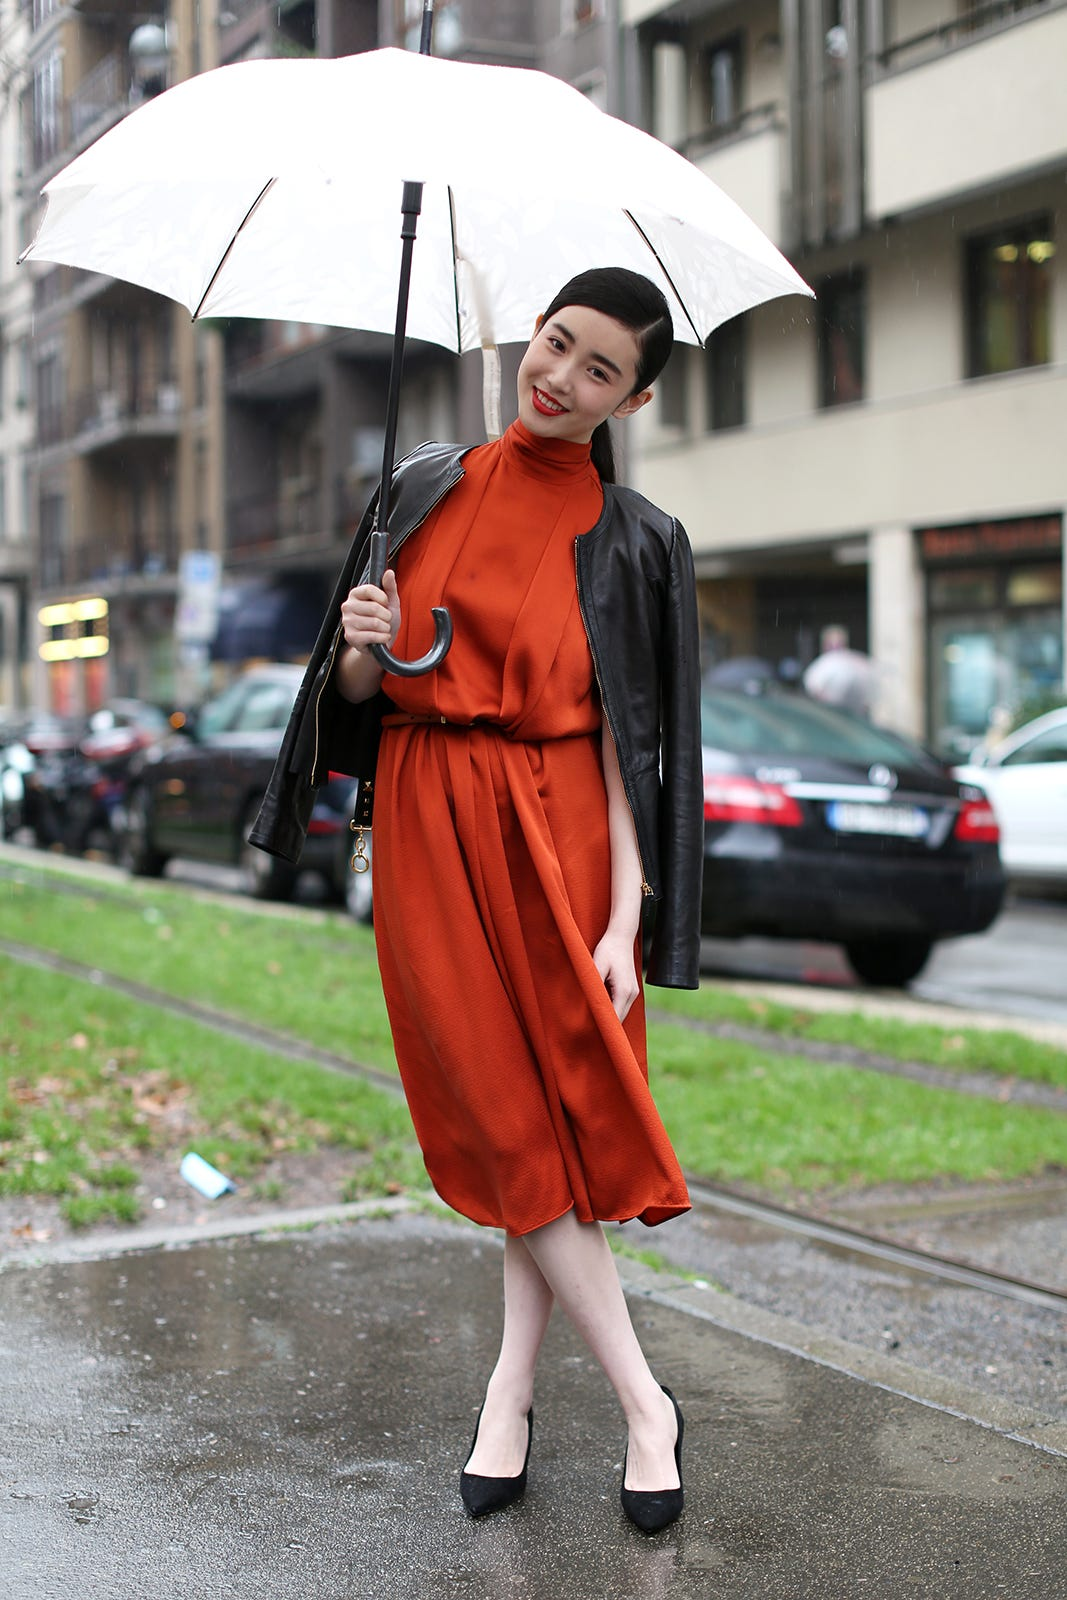 rainy day outfit inspiration The Fashion Co chic umbrella